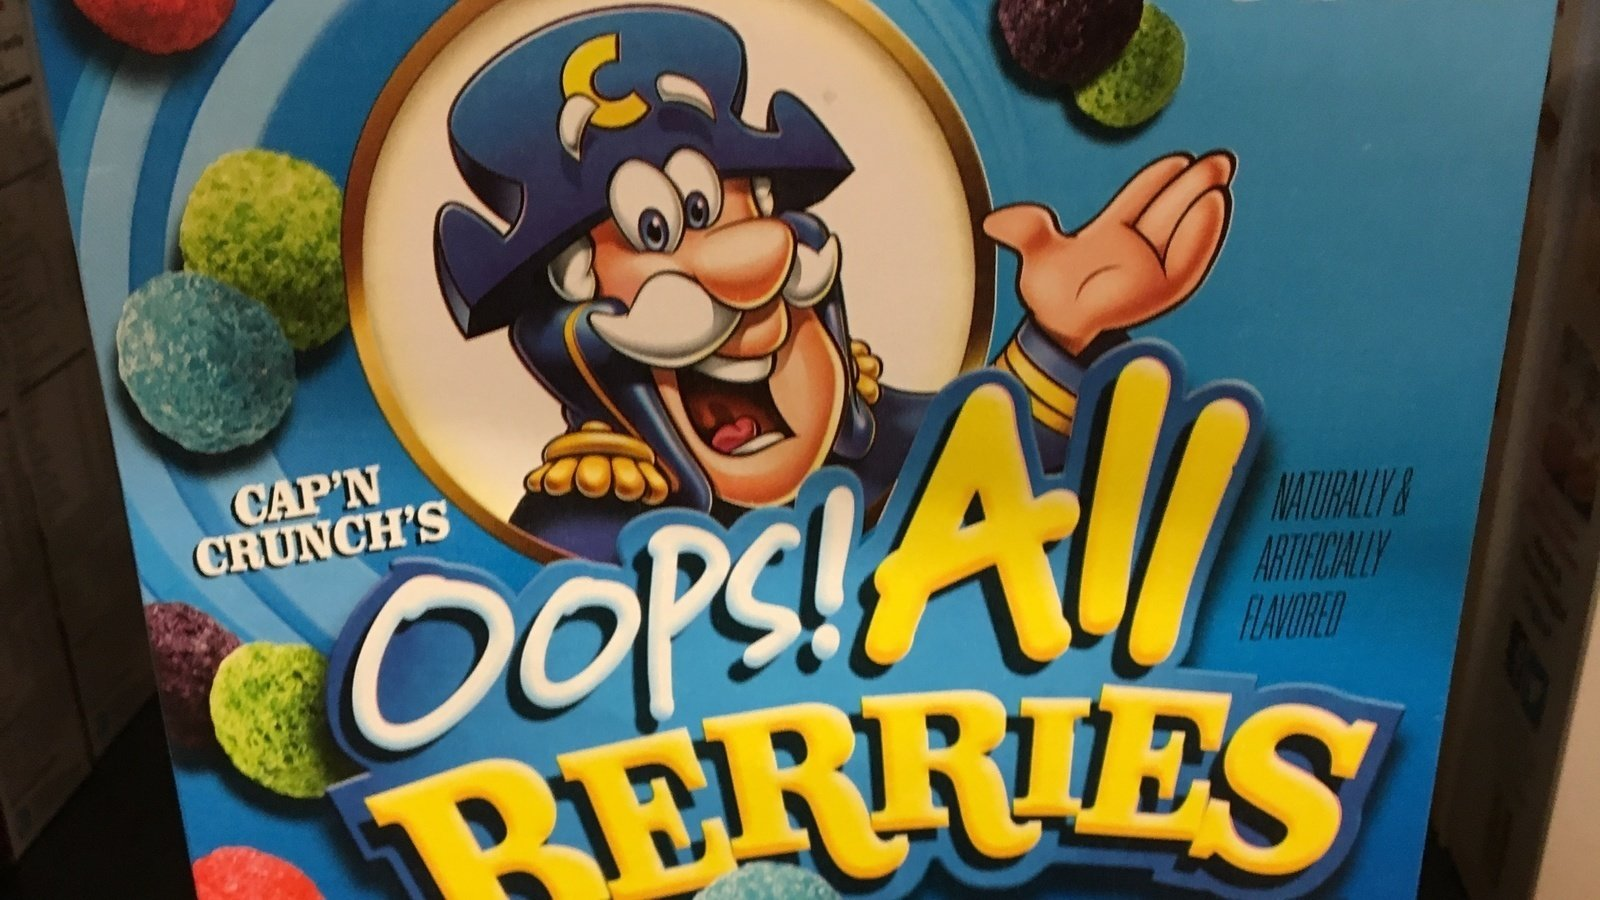 Petition Quaker Oats Convince Cap N Crunch That It S Time To Drop The Oops From Oops All Berries Change Org Subscribe now and we'll make sure you get the inside scoop on ben & jerry's fun and flavors! petition quaker oats convince cap n